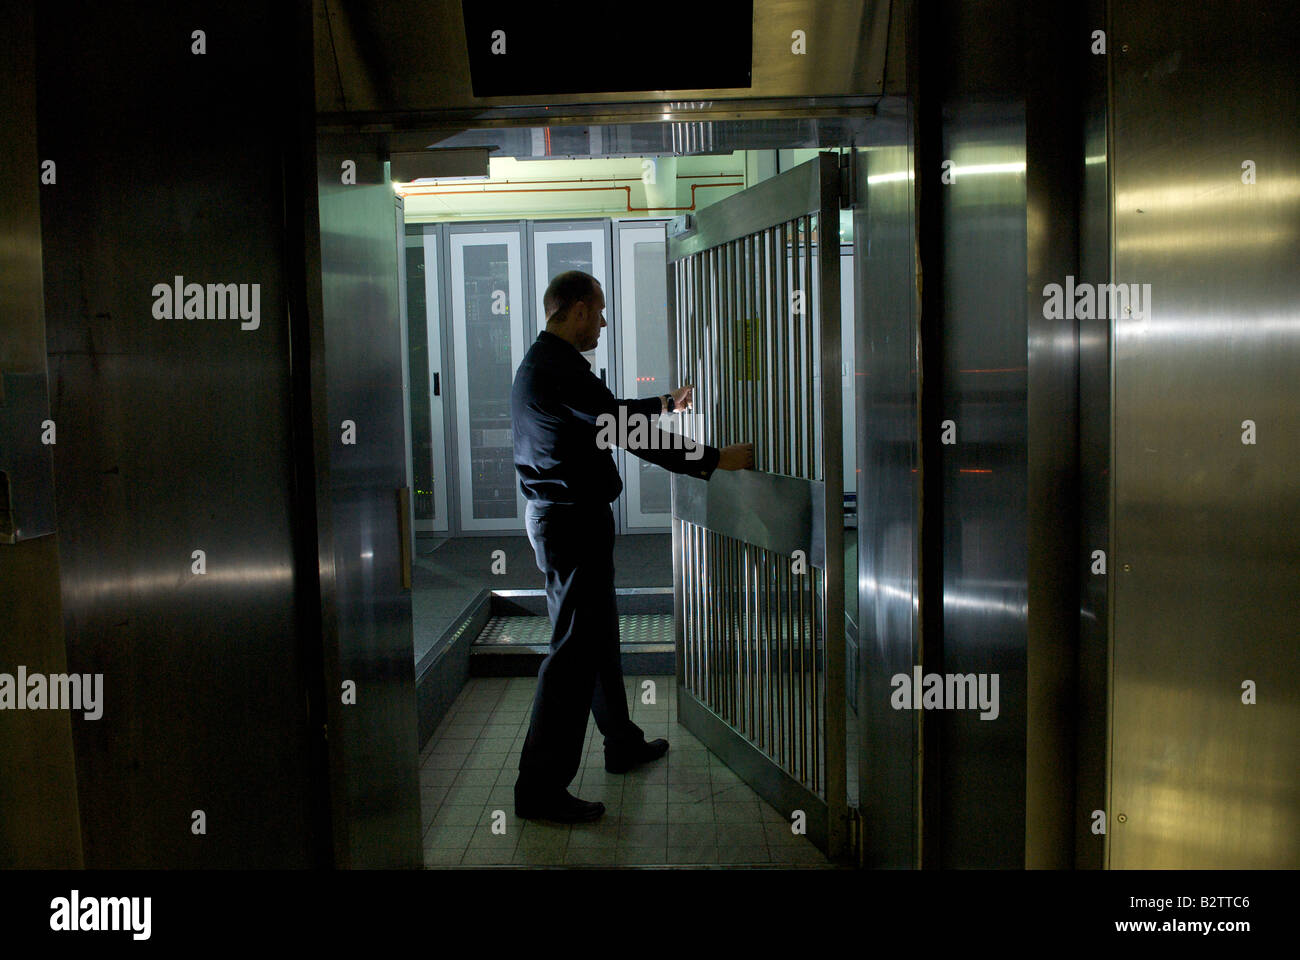 The former Bank of England bullion vault in Manchester, now home to secure data storage - Stock Image